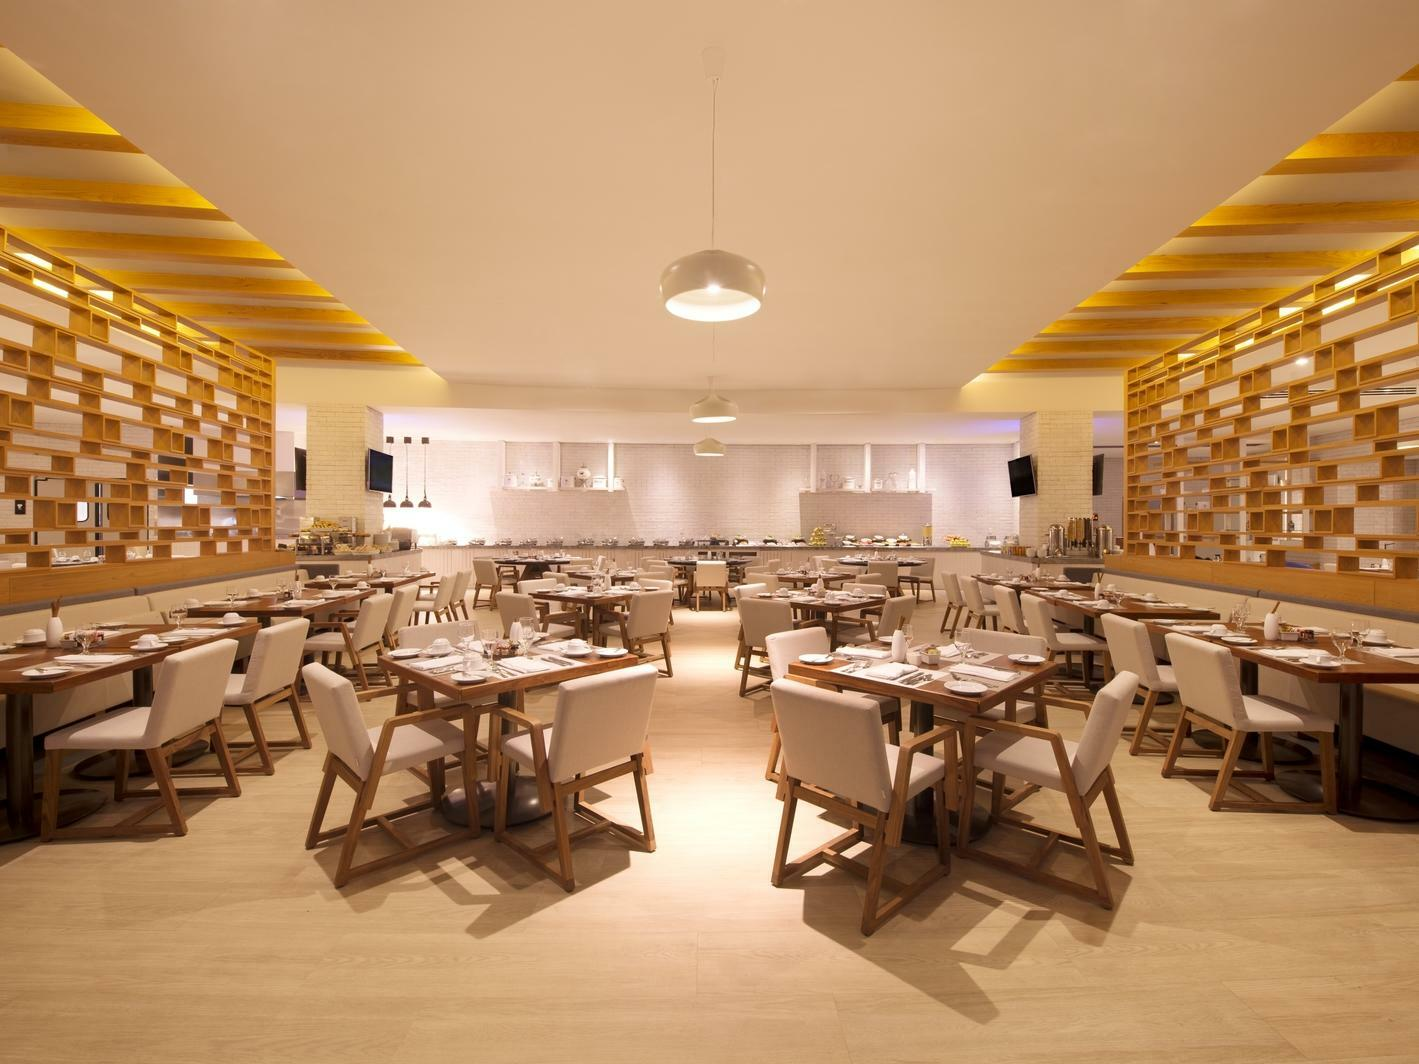 restaurant dining room with tables and chairs